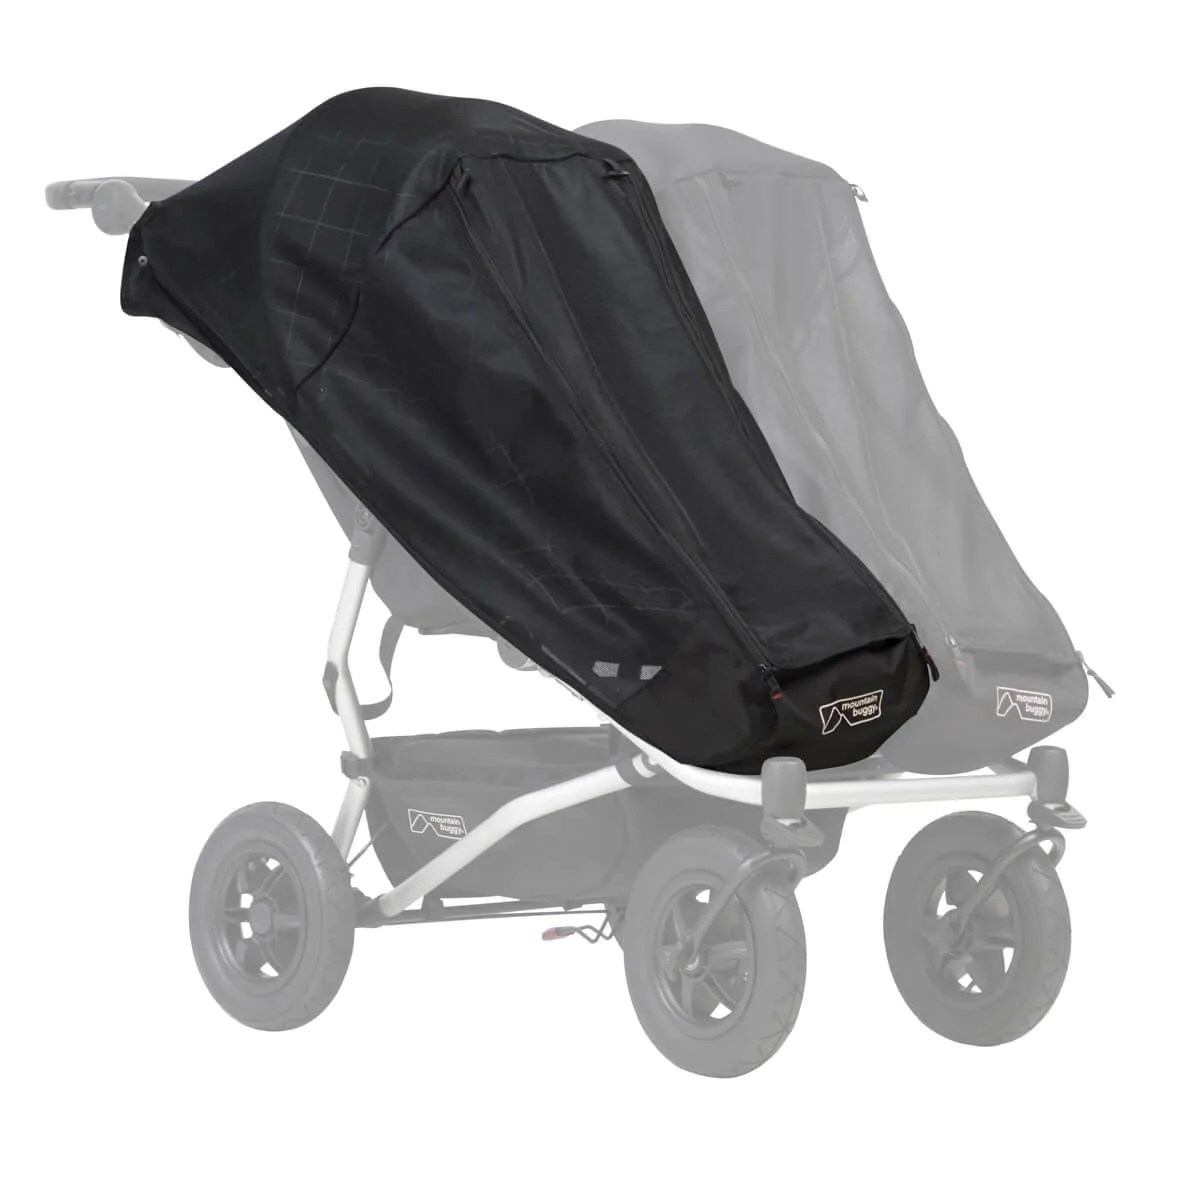 Stroller Mesh Cover Mountain Buggy Duet V3 Single Stroller Mesh Cover